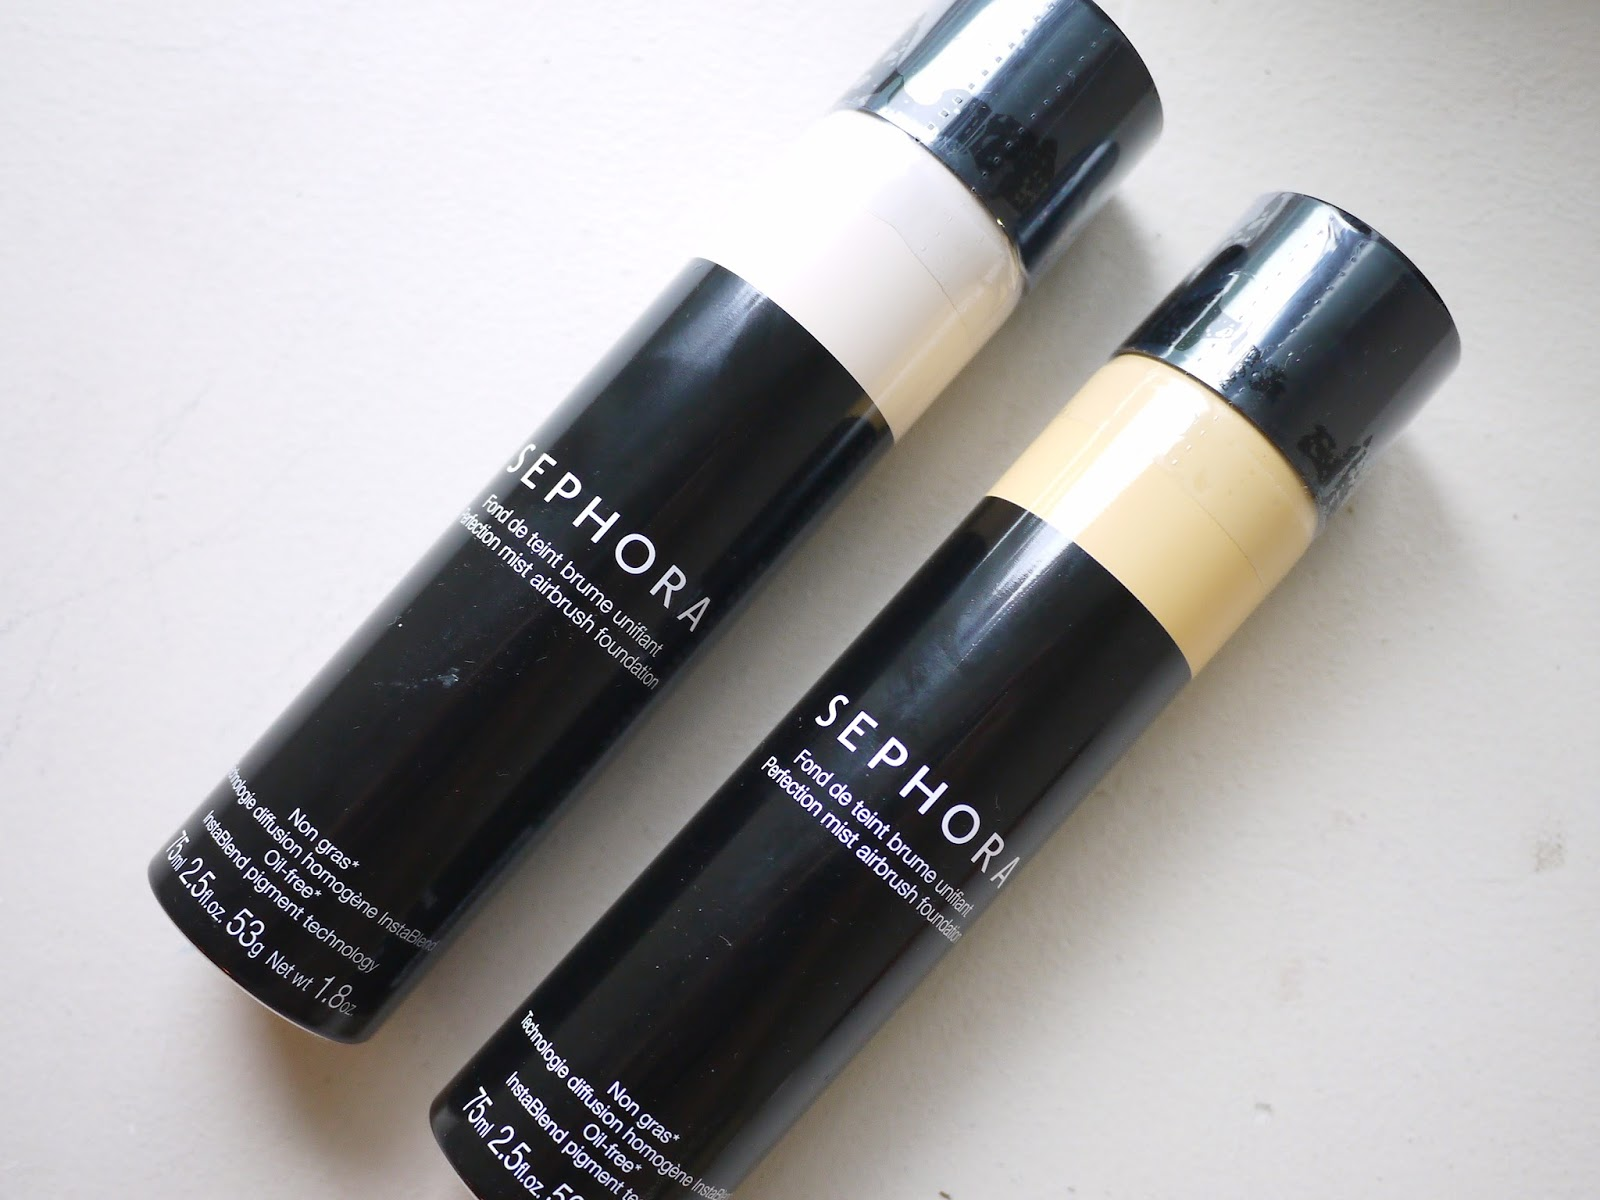 Sephora Perfection Mist Airbrush Foundation* review cream and fawn swatch